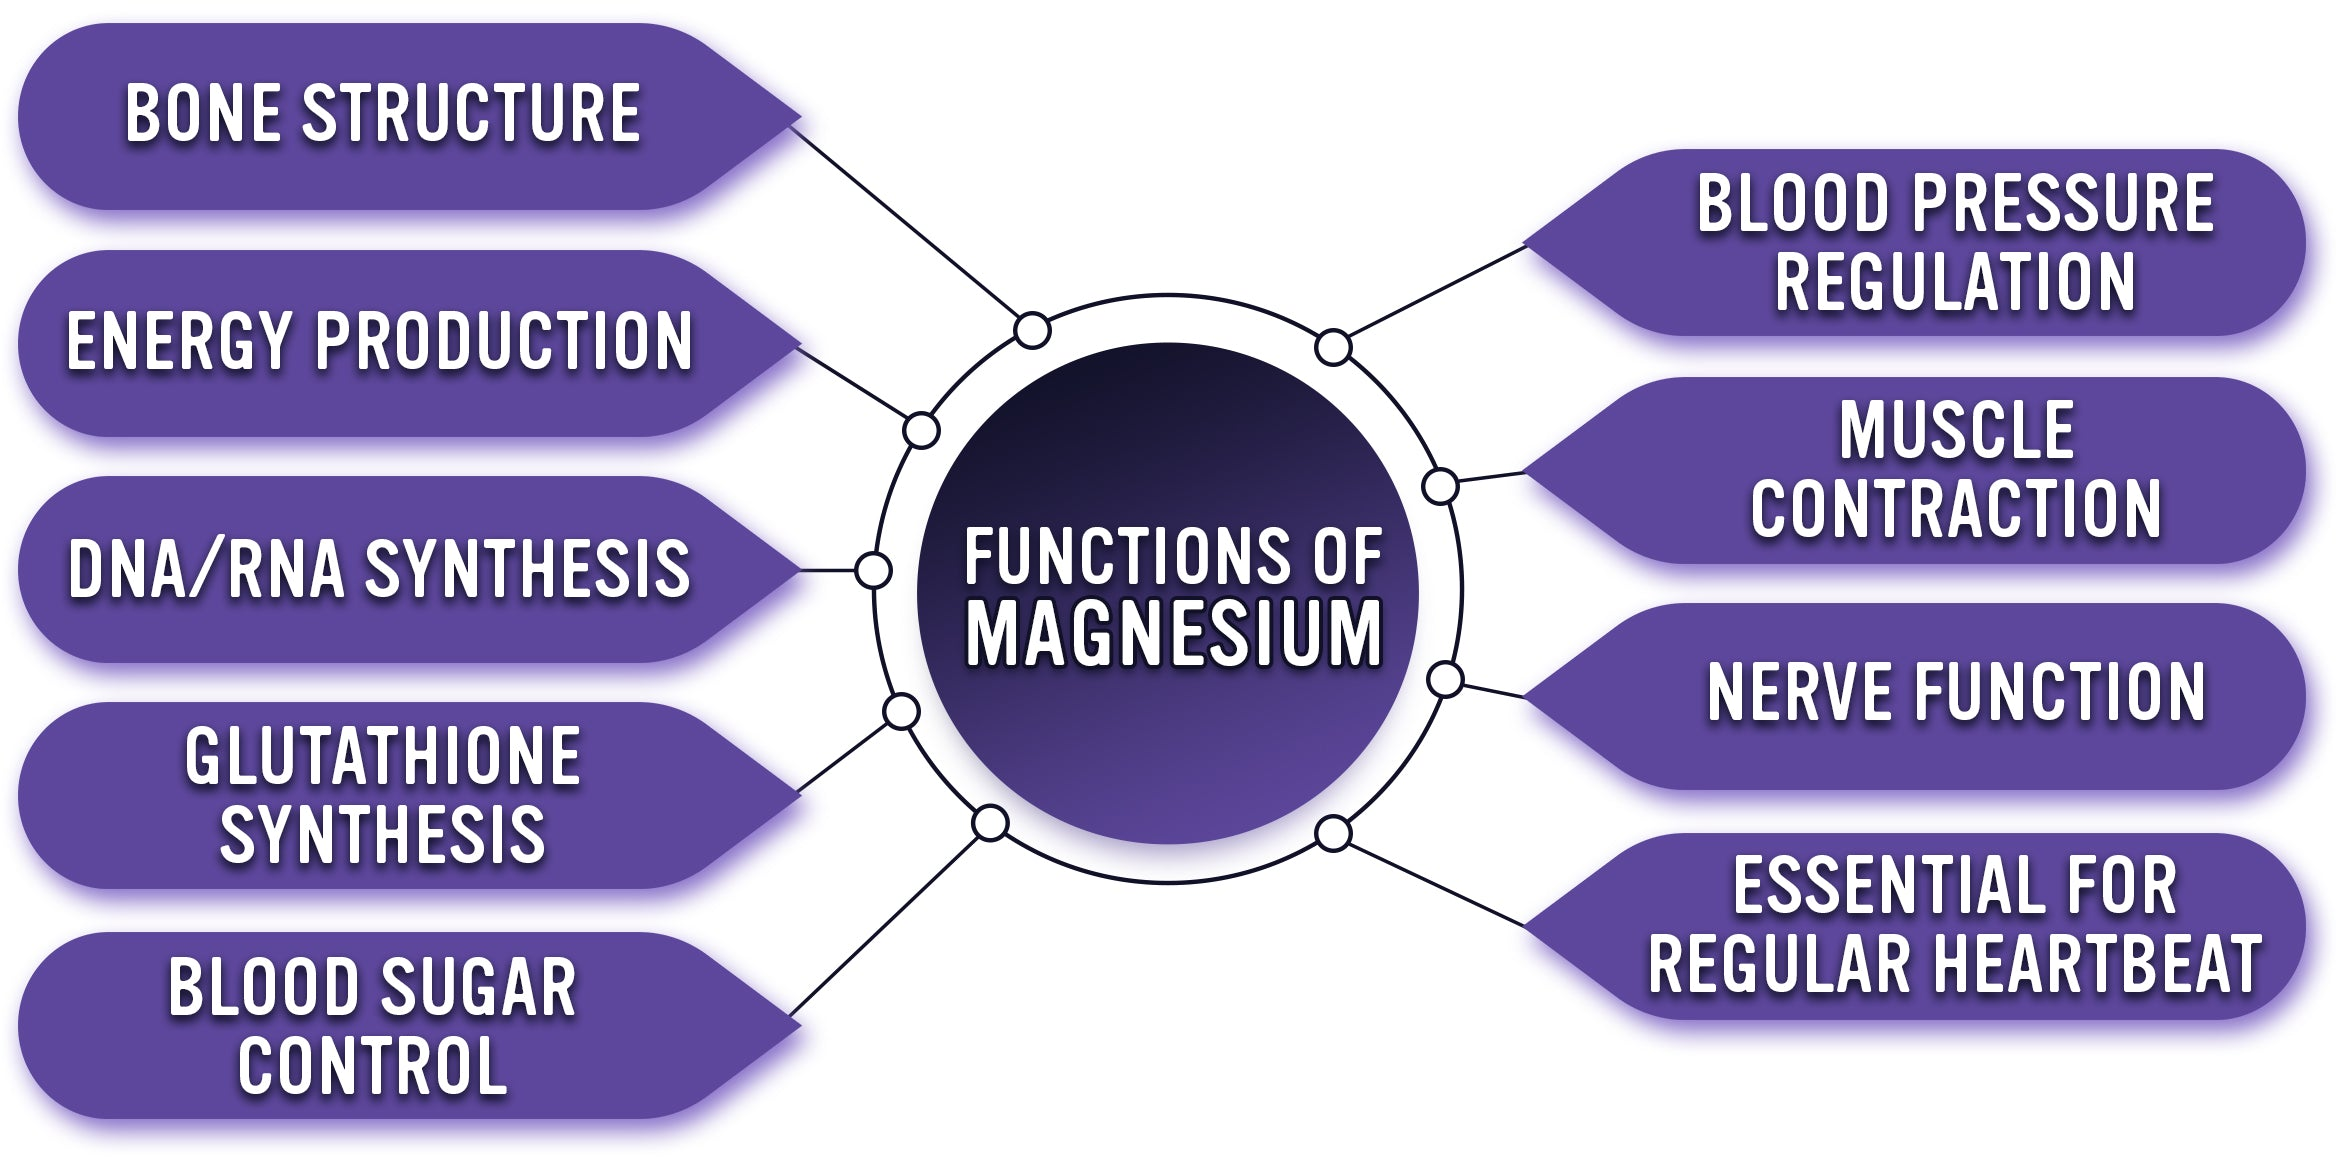 Functions of Magnesium